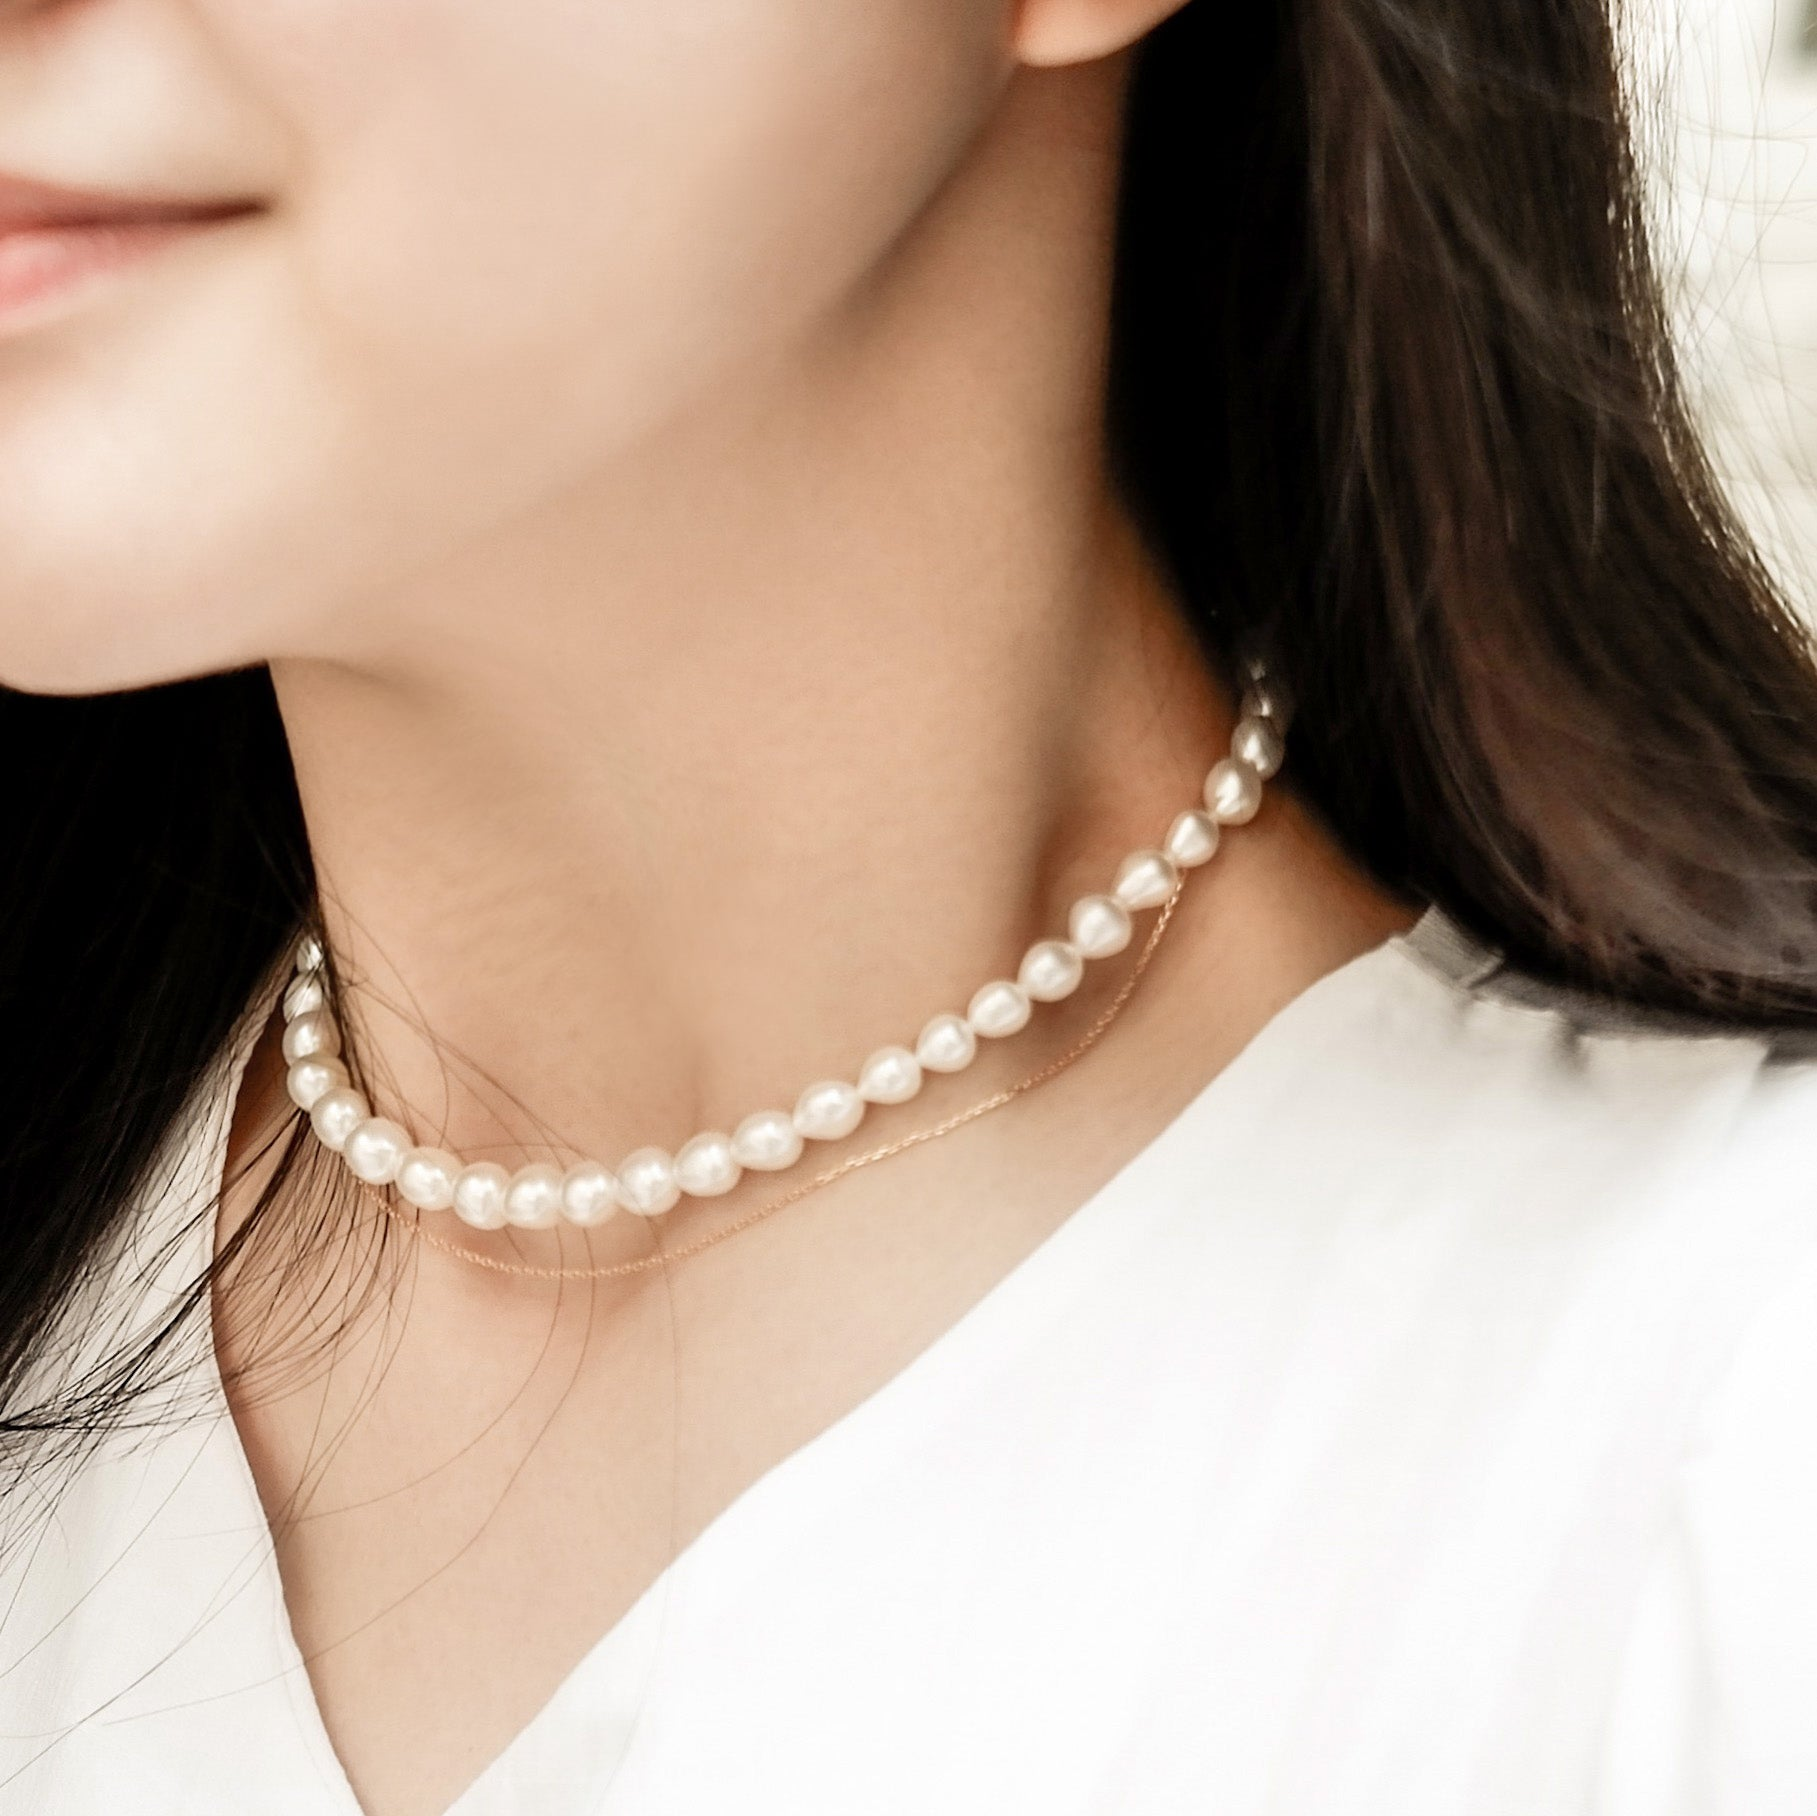 THE CLASSIC PEARL-SILVER LAYERING CHOKER